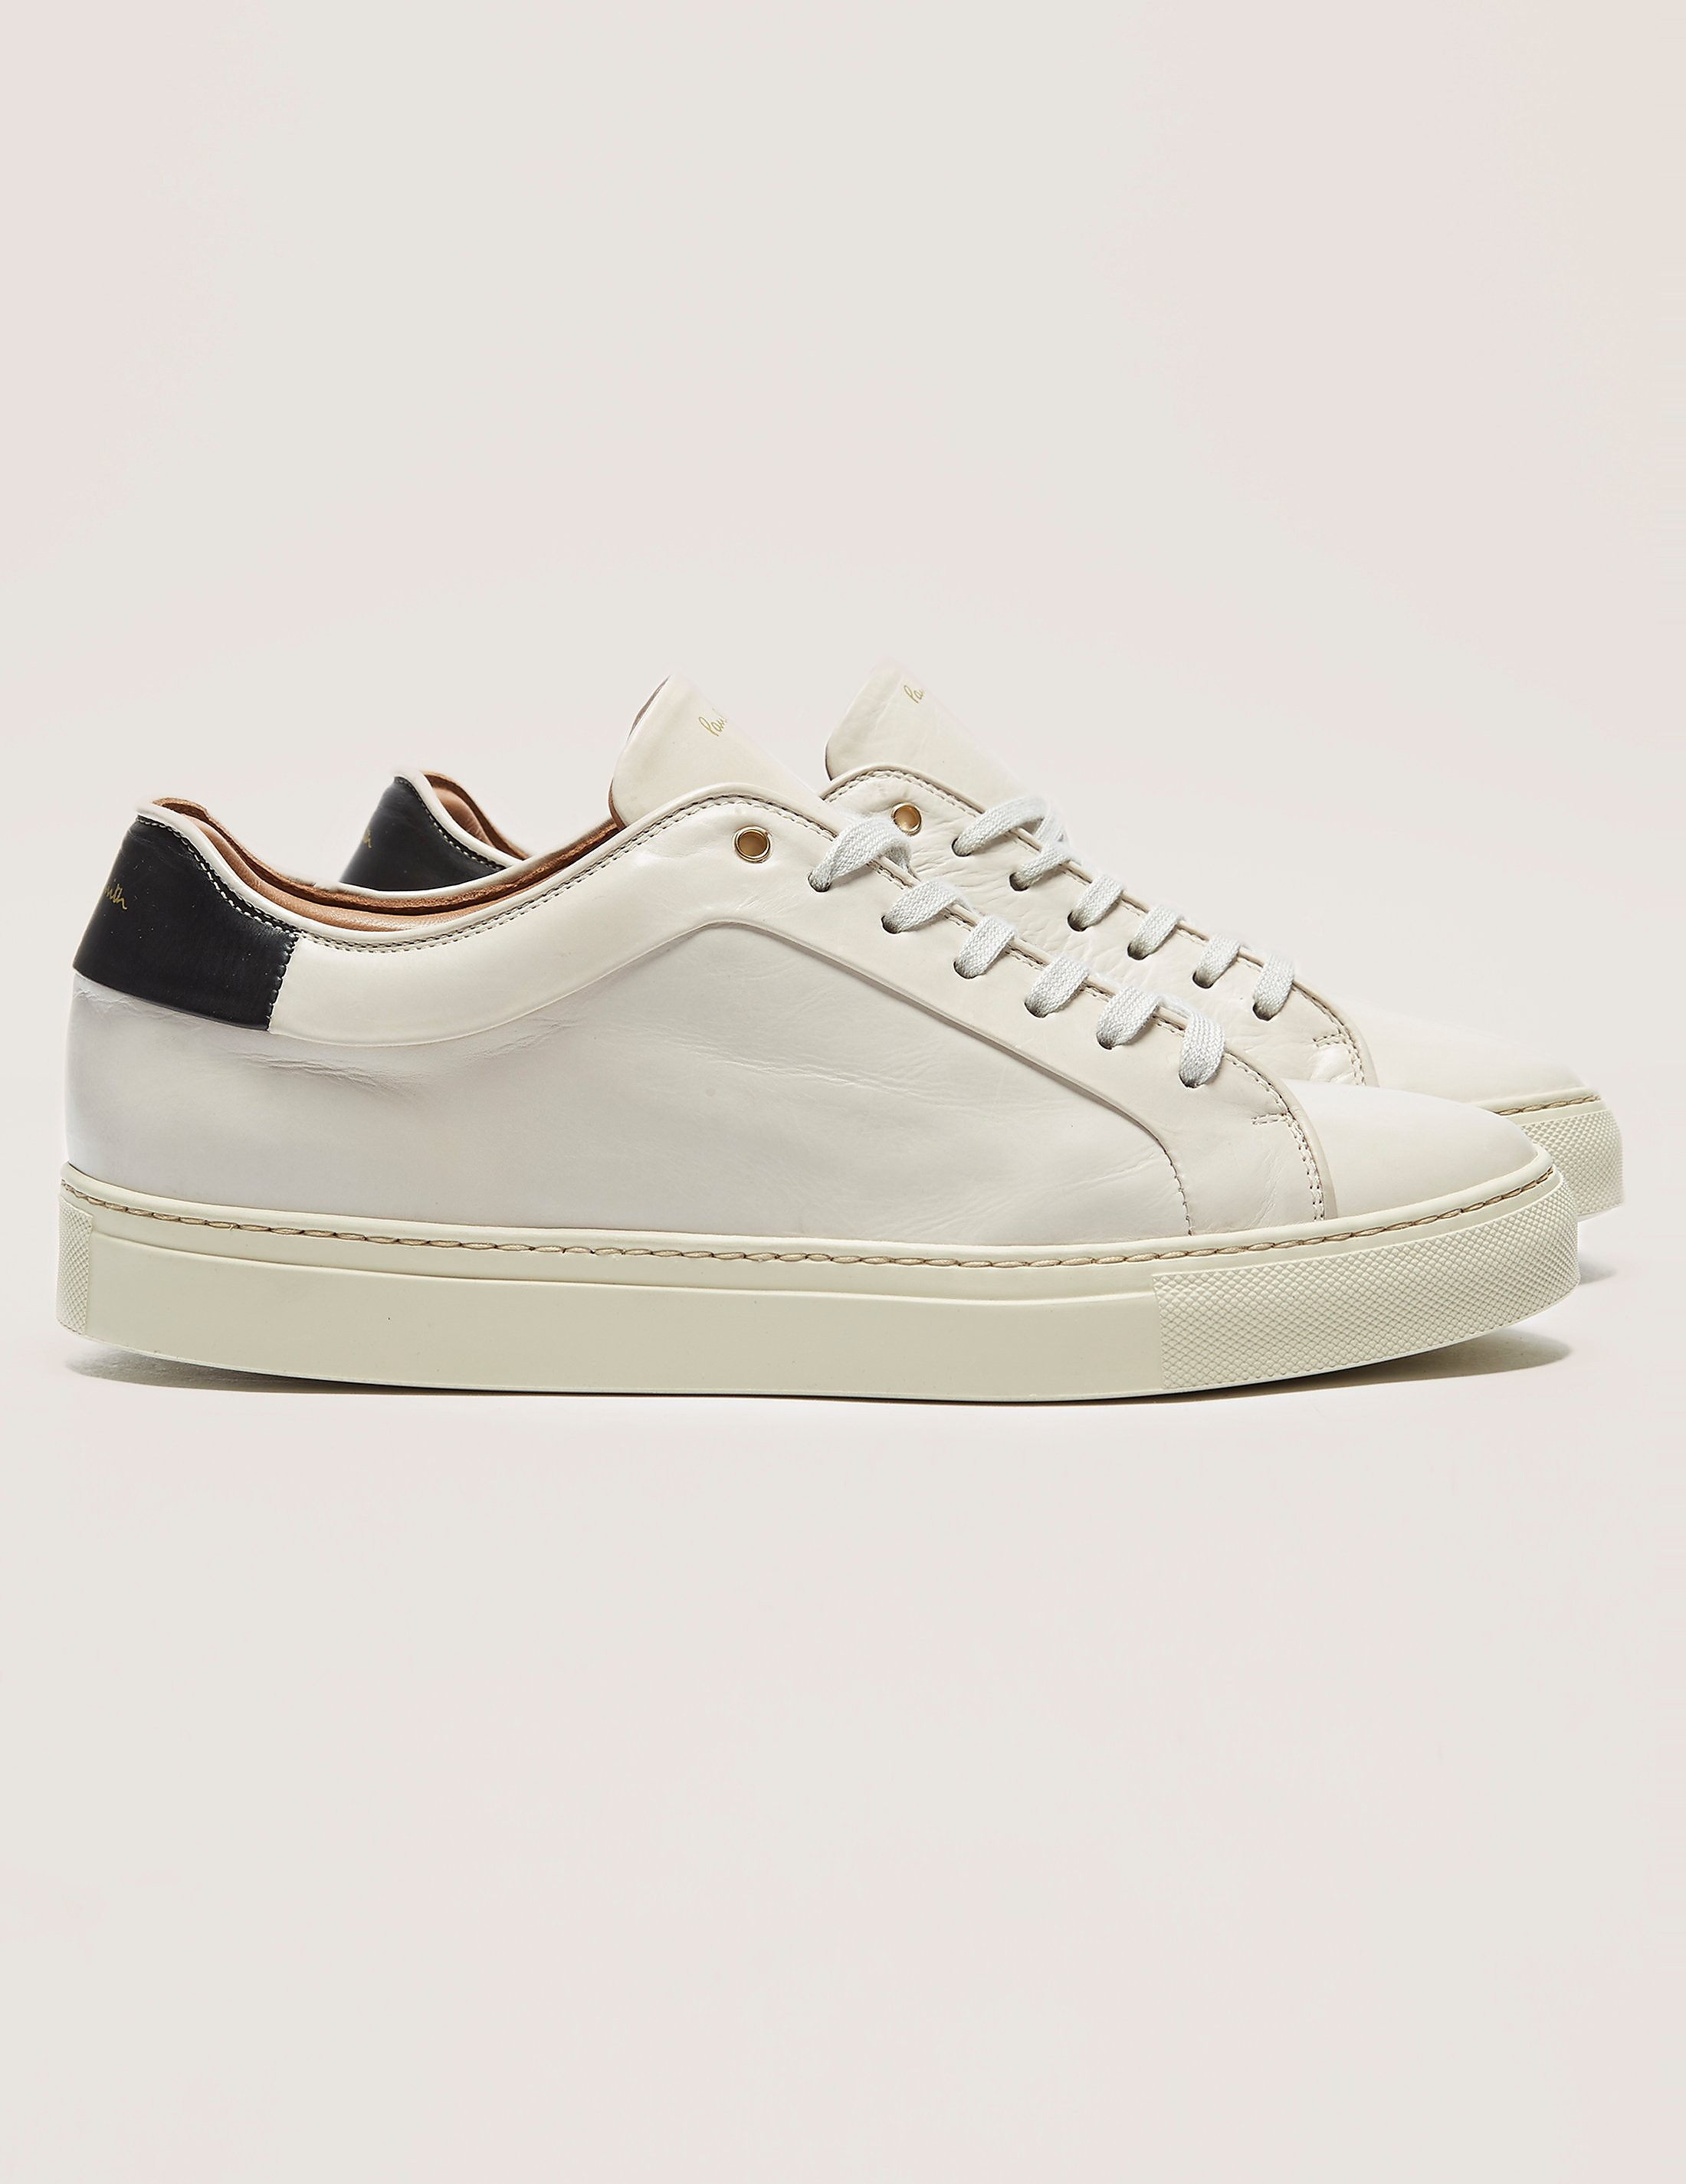 Paul Smith Cupsole Trainers